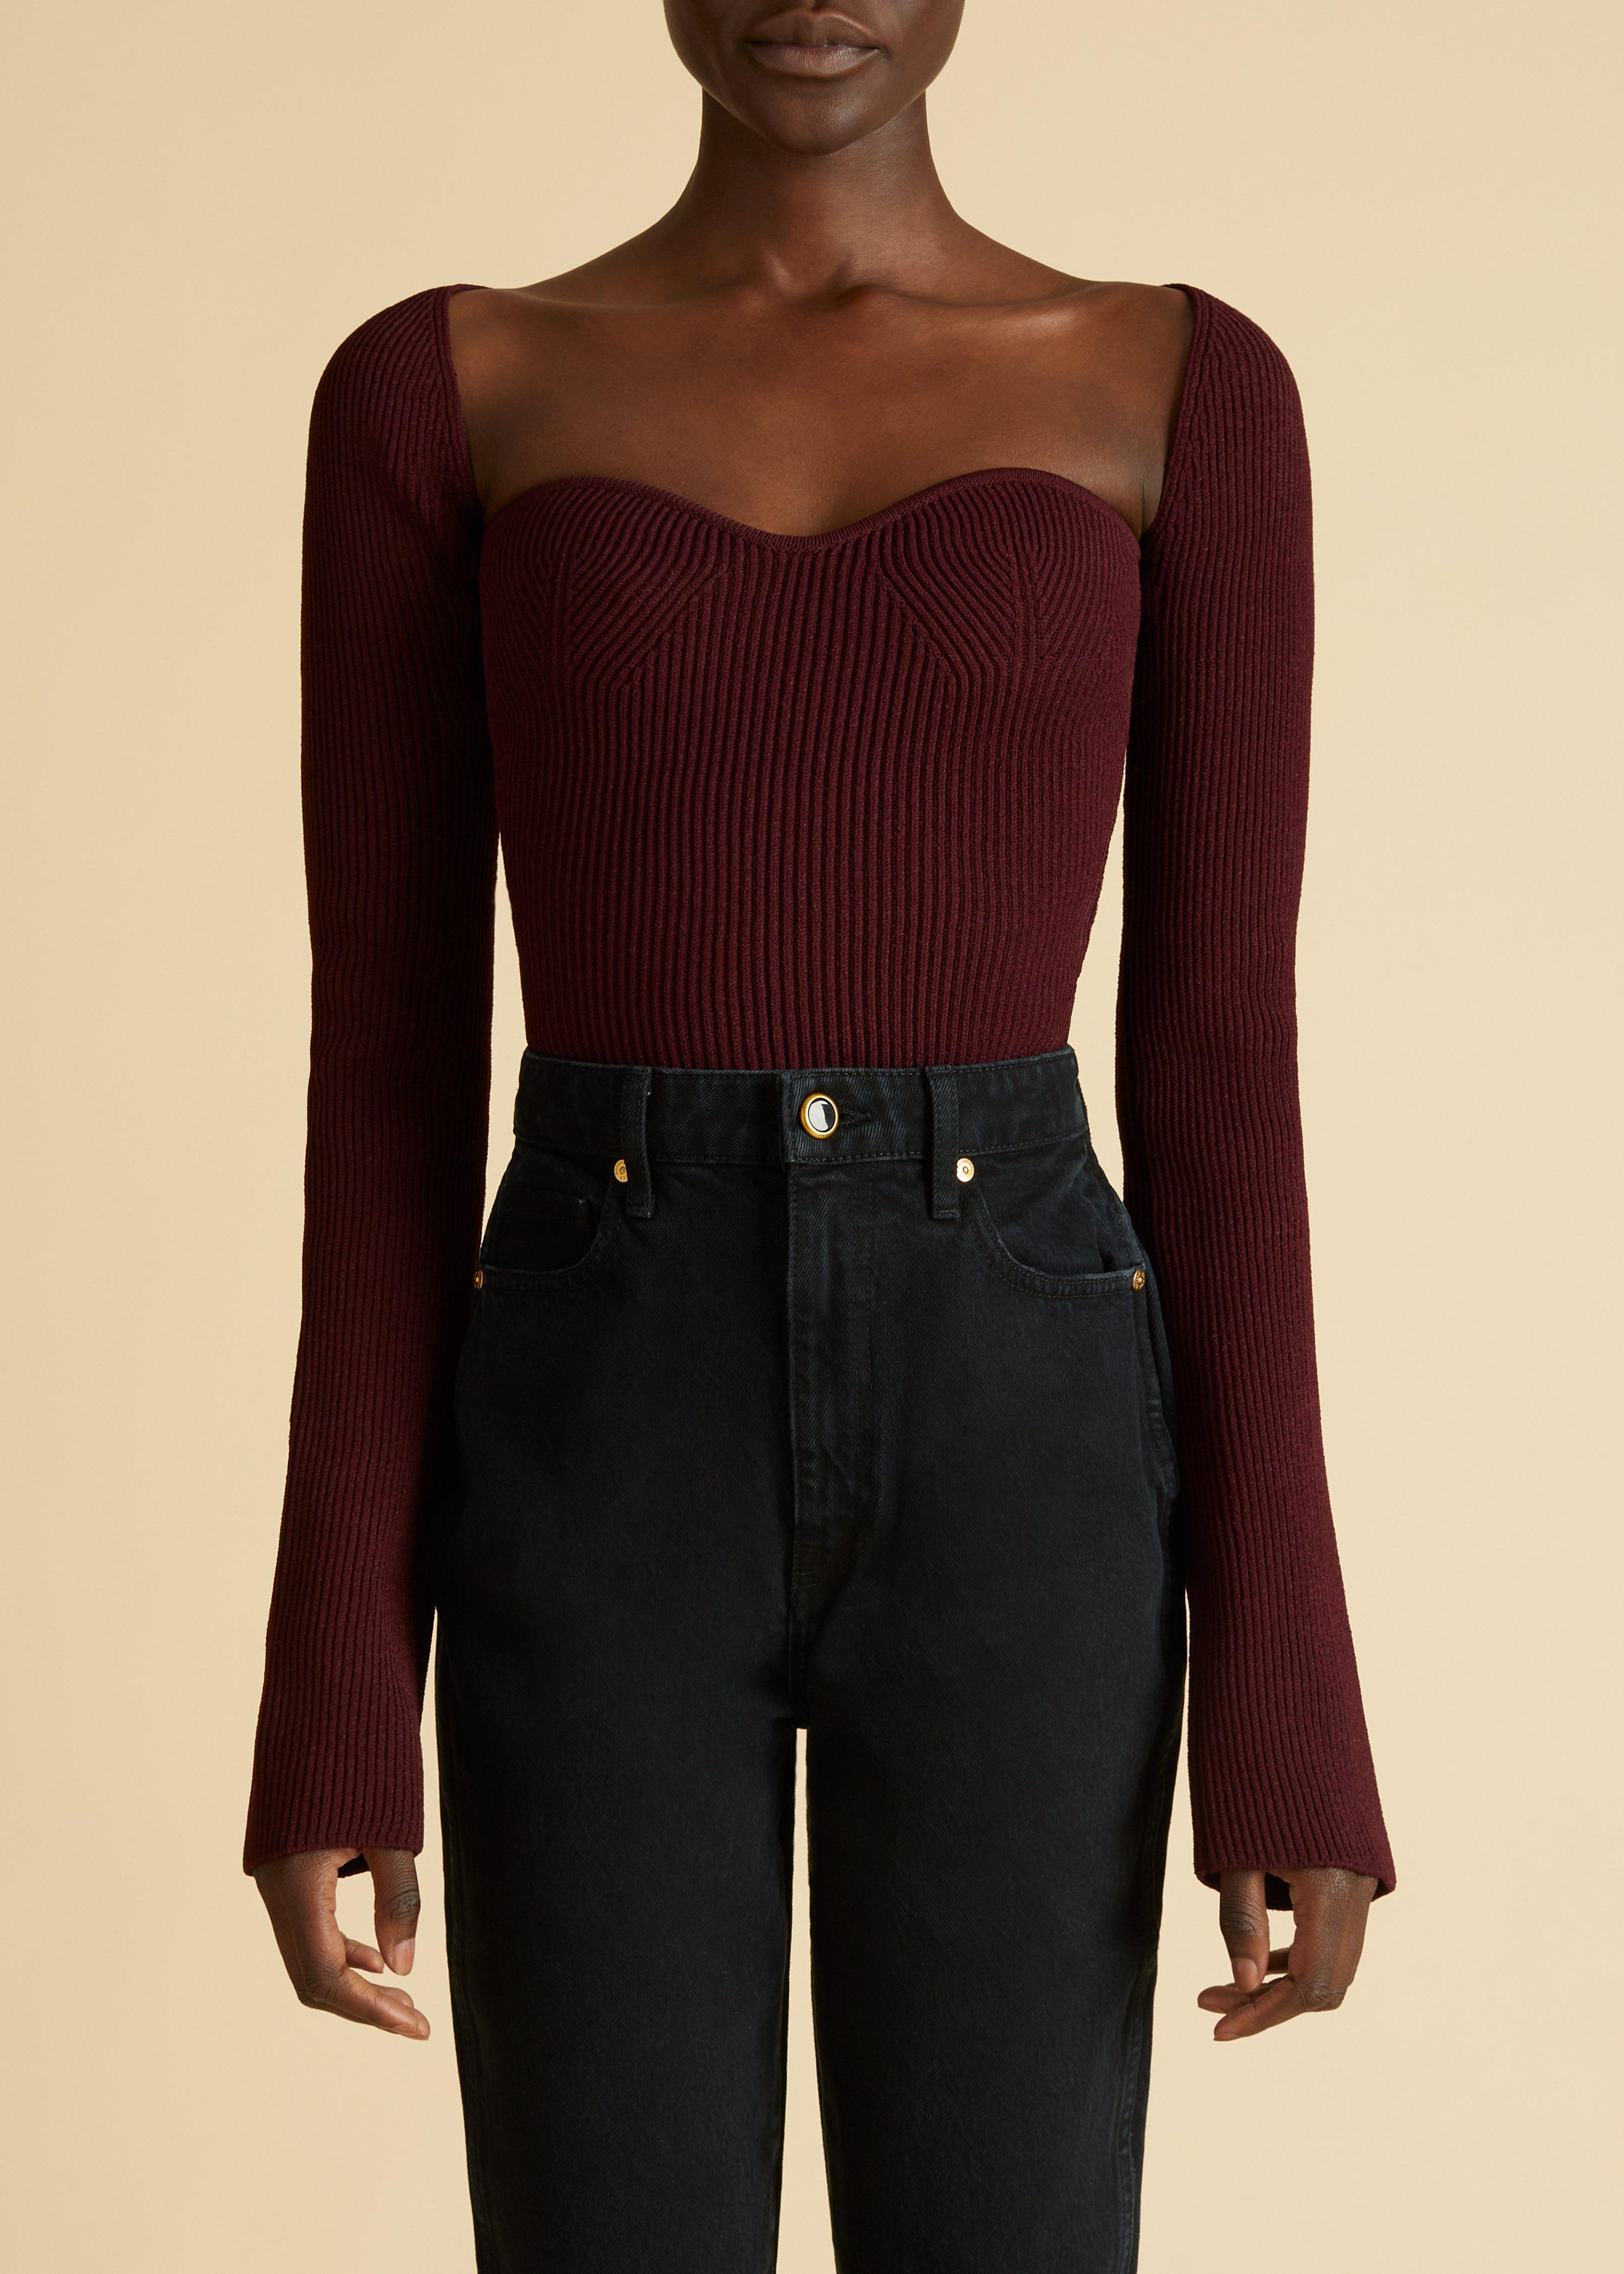 The Maddy Top in Oxblood